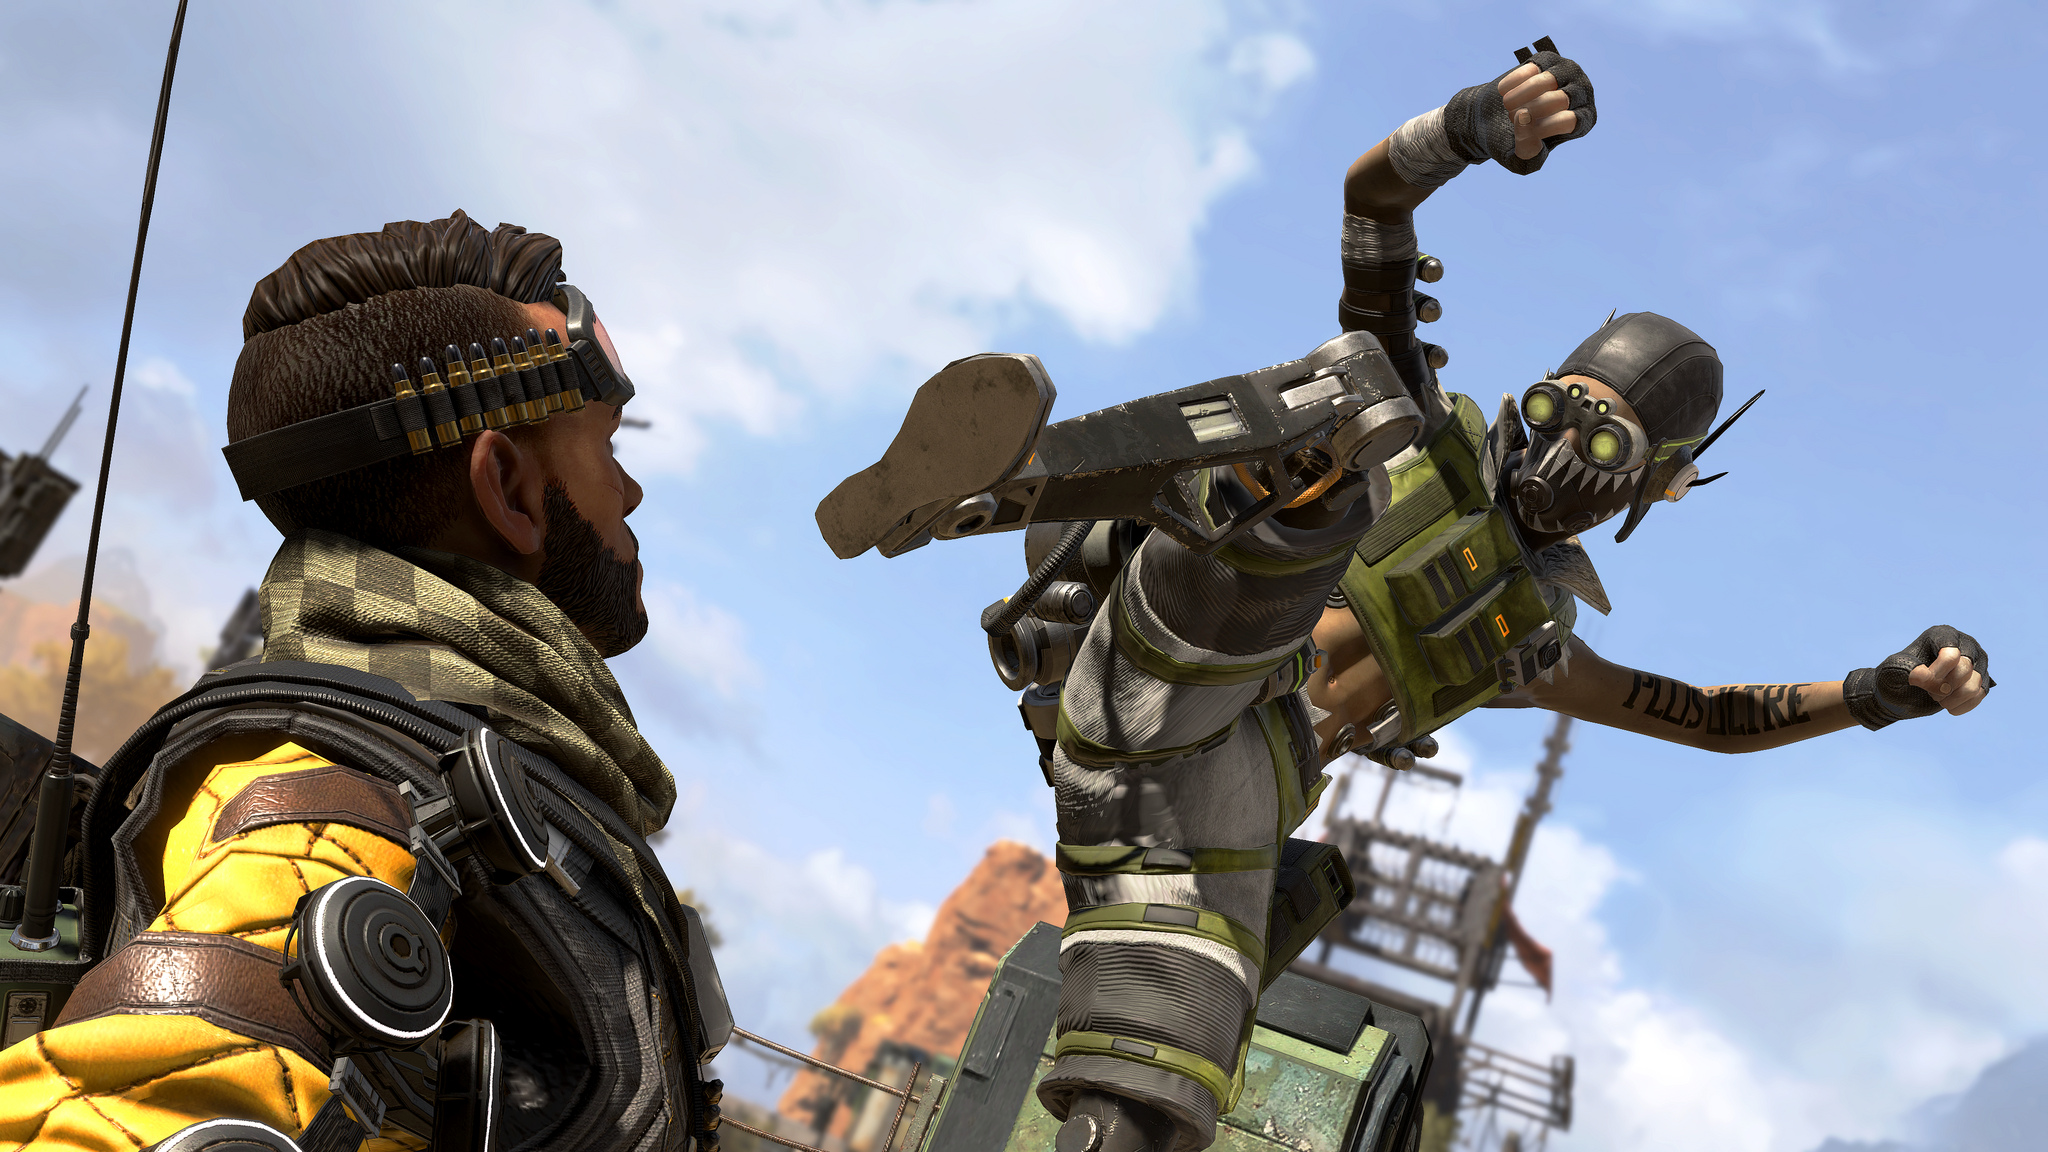 Apex Legends forum furious as devs call players 'ass-hats' and 'freeloaders'